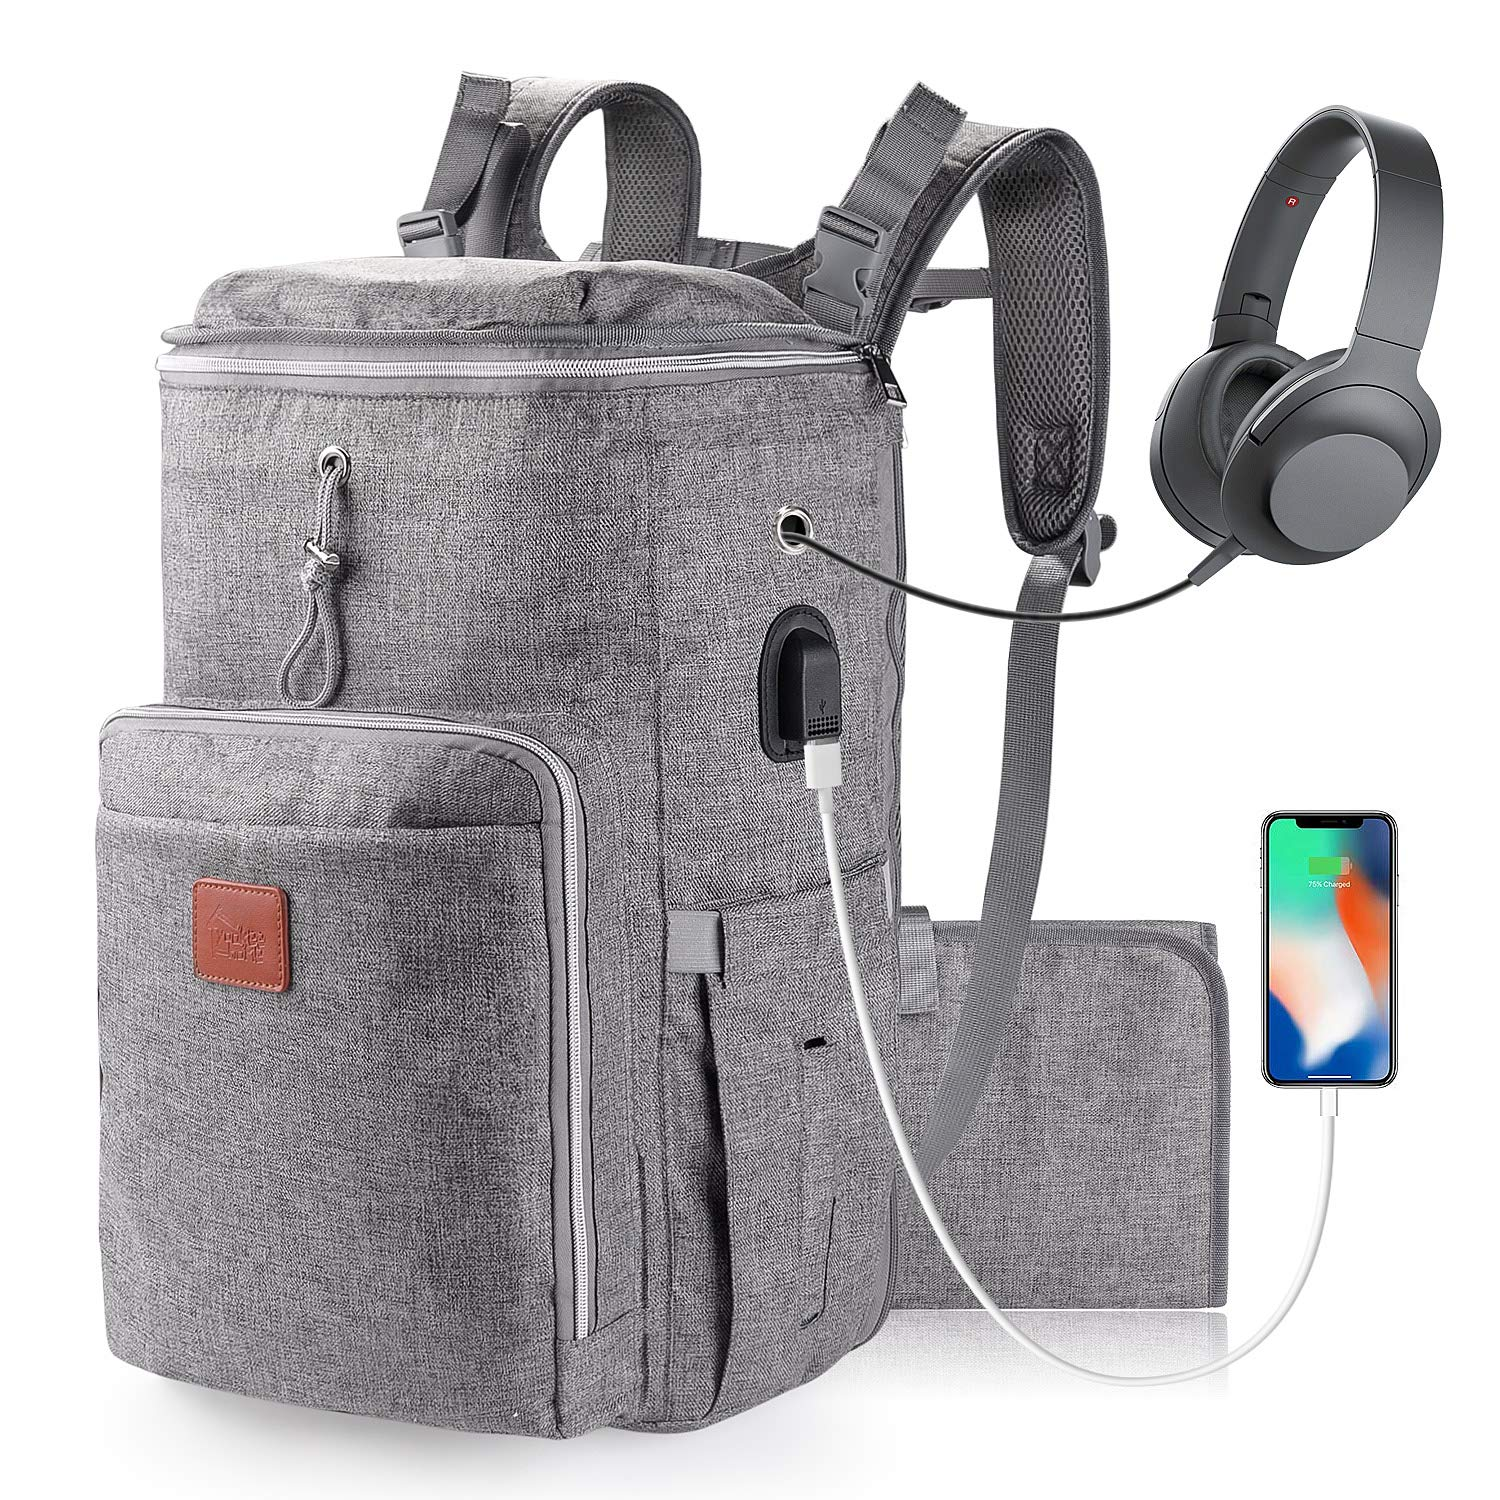 Large Diaper Bag Backpack for Twins or Two Kids, Expandable Grey Baby Diaper Bag for Mom Dad Extra Large Travel Diaper Backpack with USB Charging Port, Portable Changing Pad, Stroller Straps